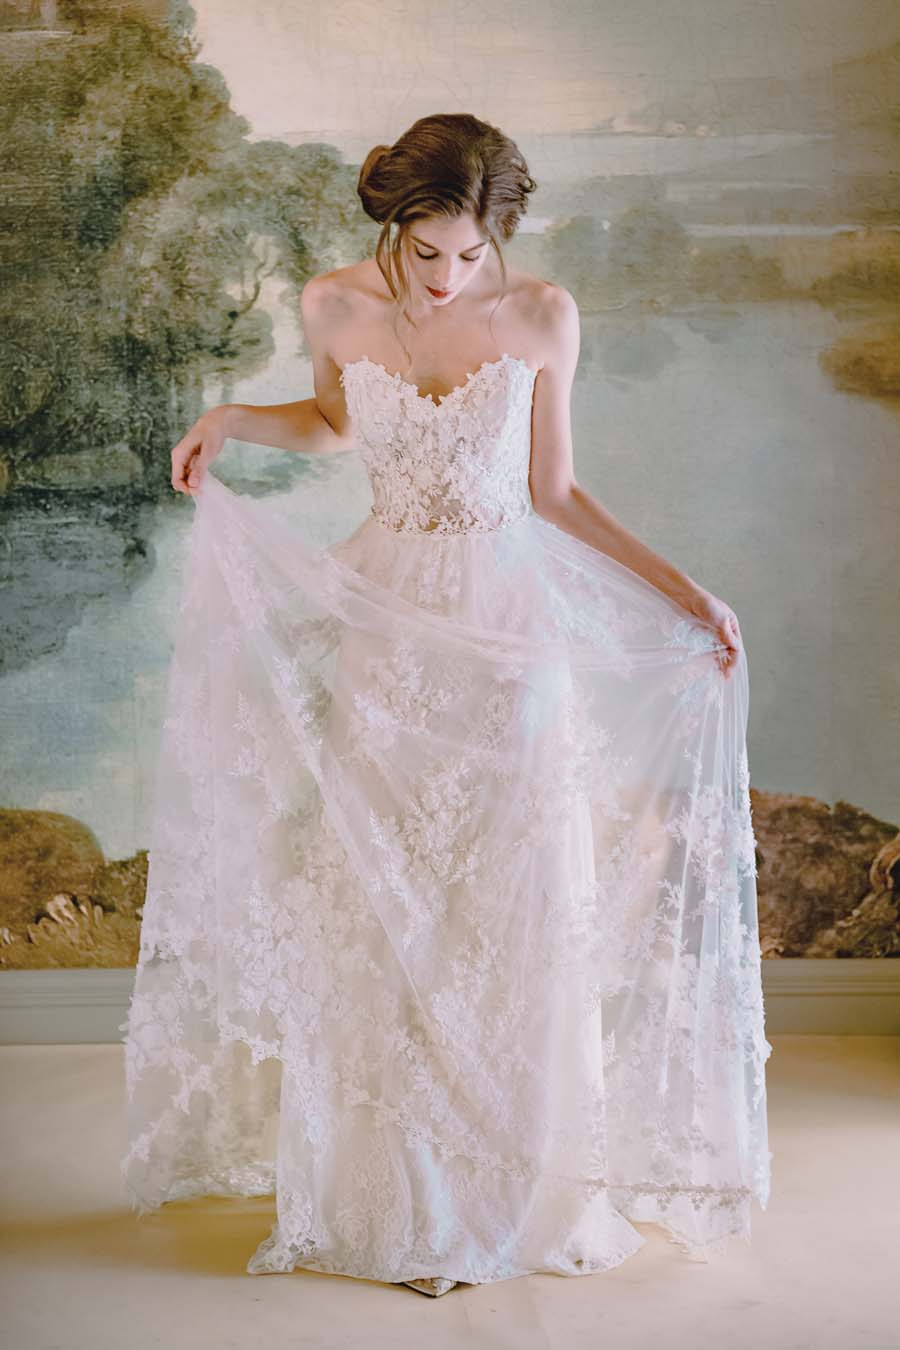 The Timeless Bride Wedding Gown Collection By Claire Pettibone